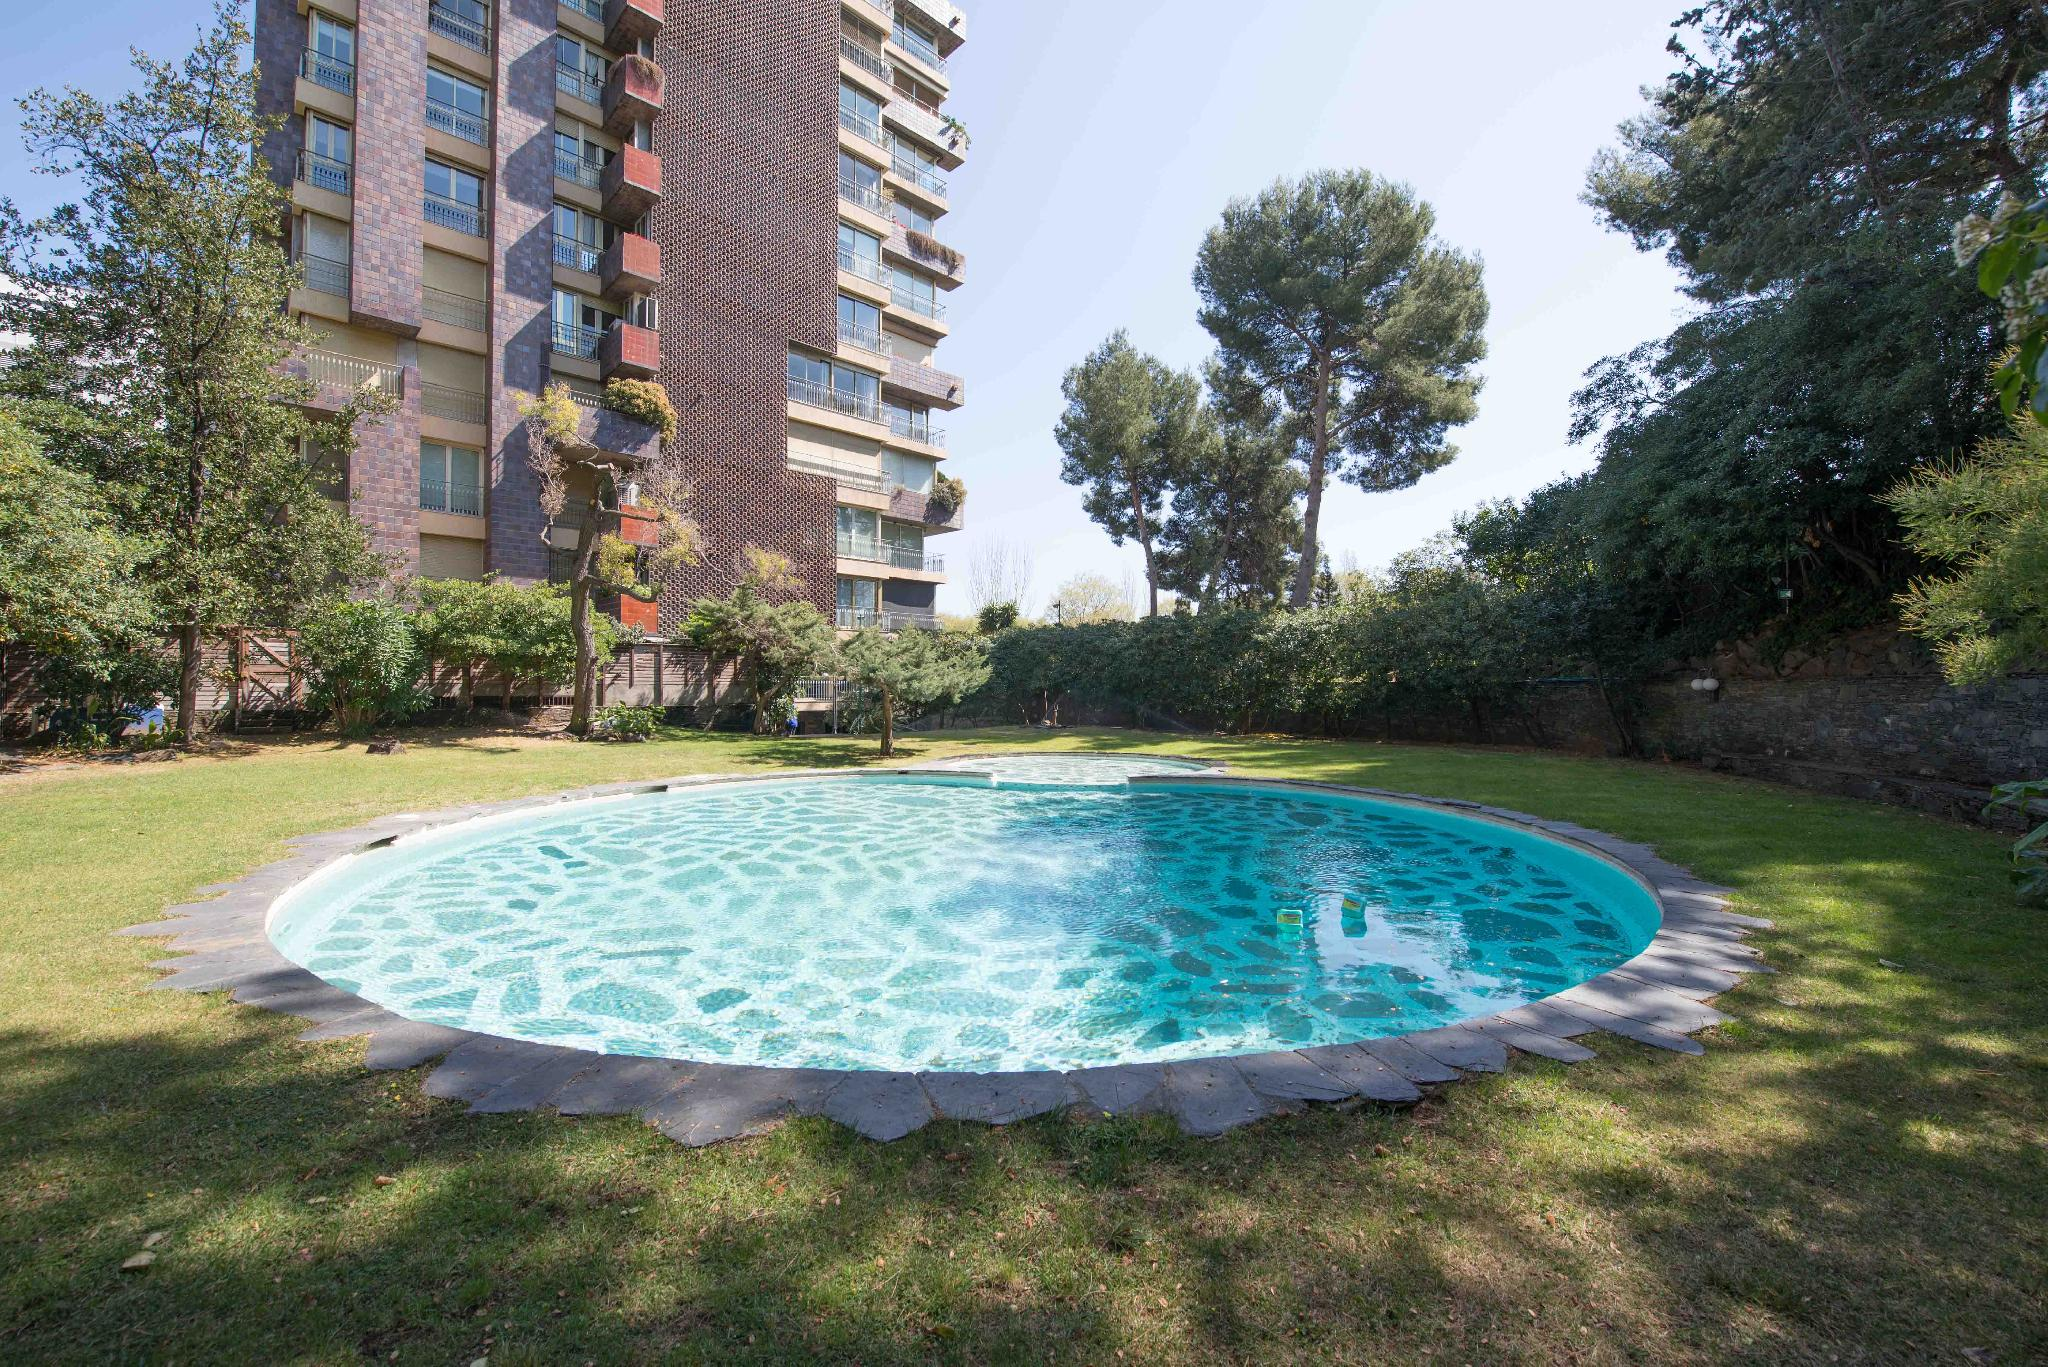 80454 Apartment for sale in Les Corts, Pedralbes 3